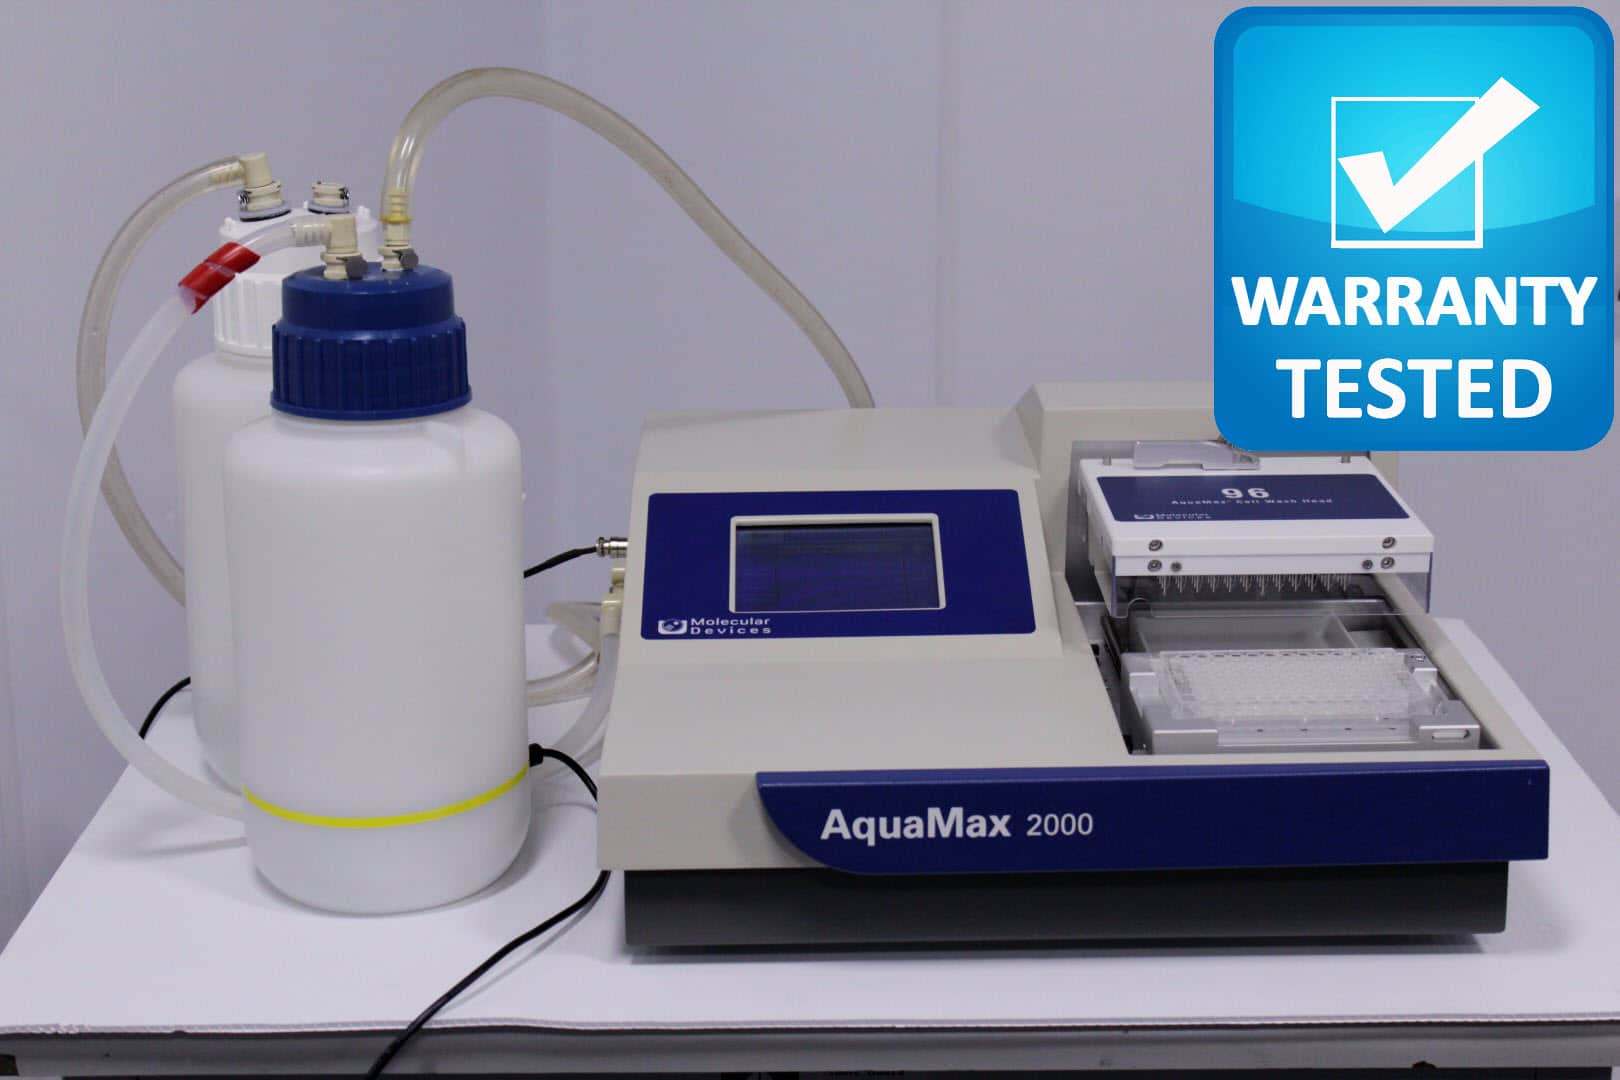 Molecular Devices AquaMax 2000 Microplate Washer Unit3